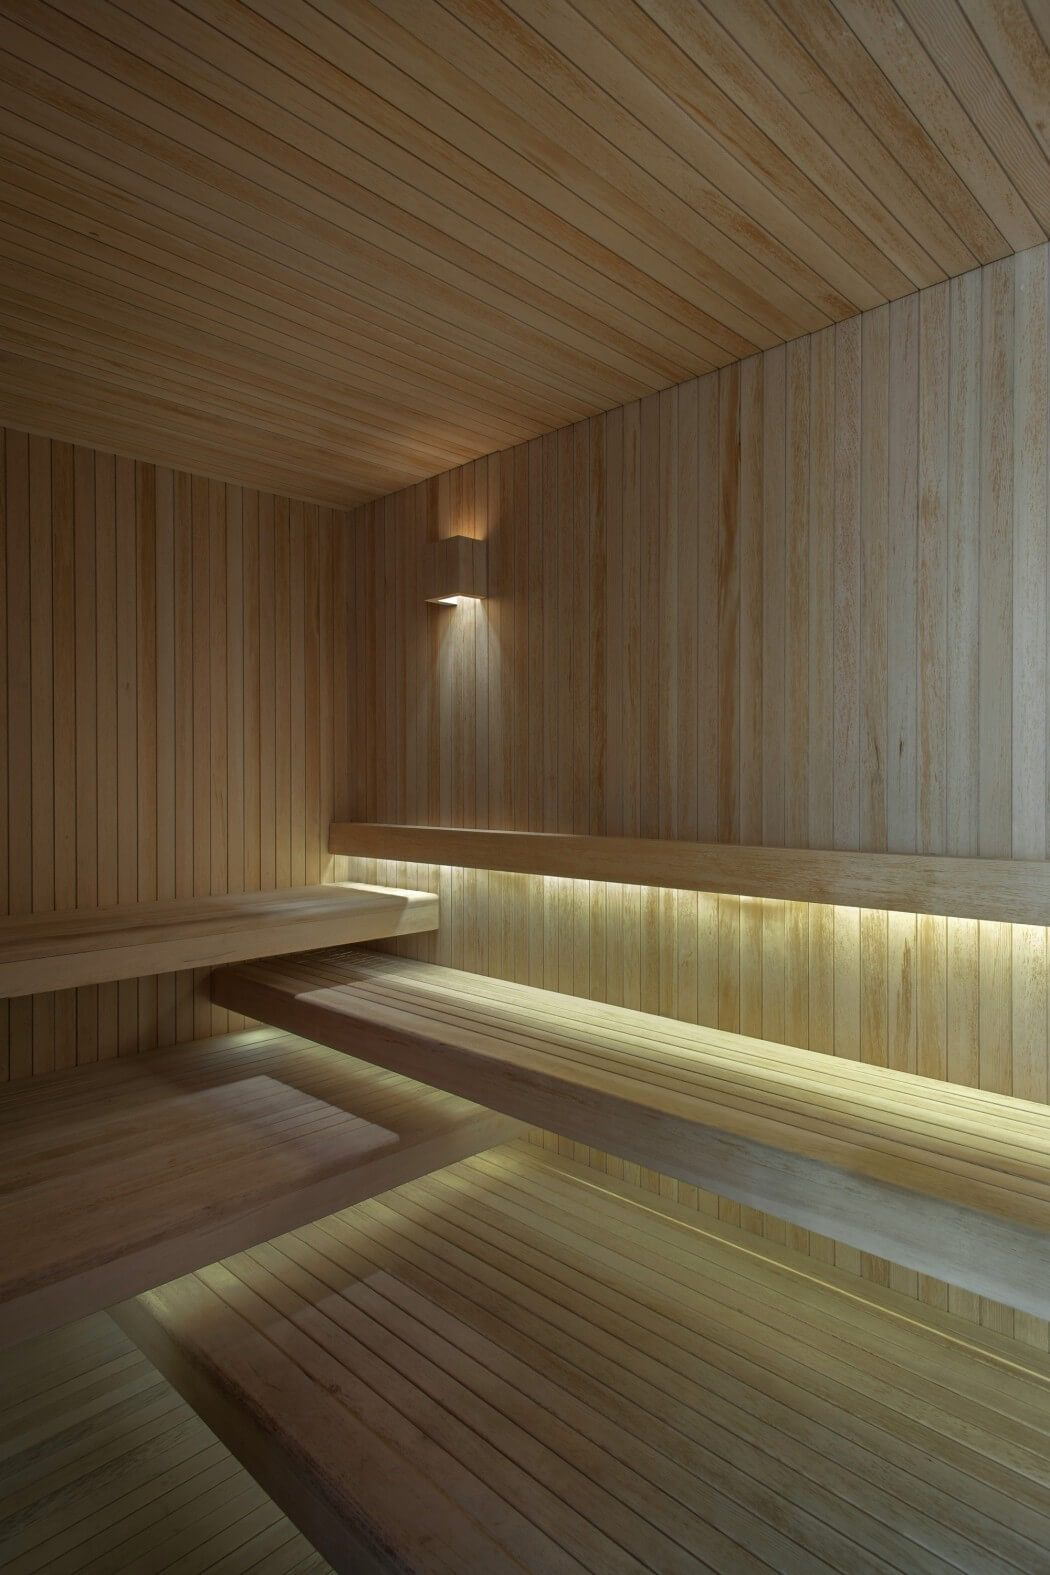 Sauna Interieur Pin By Jane Brandal On Sauna Time Sauna S Luxe Inrichting